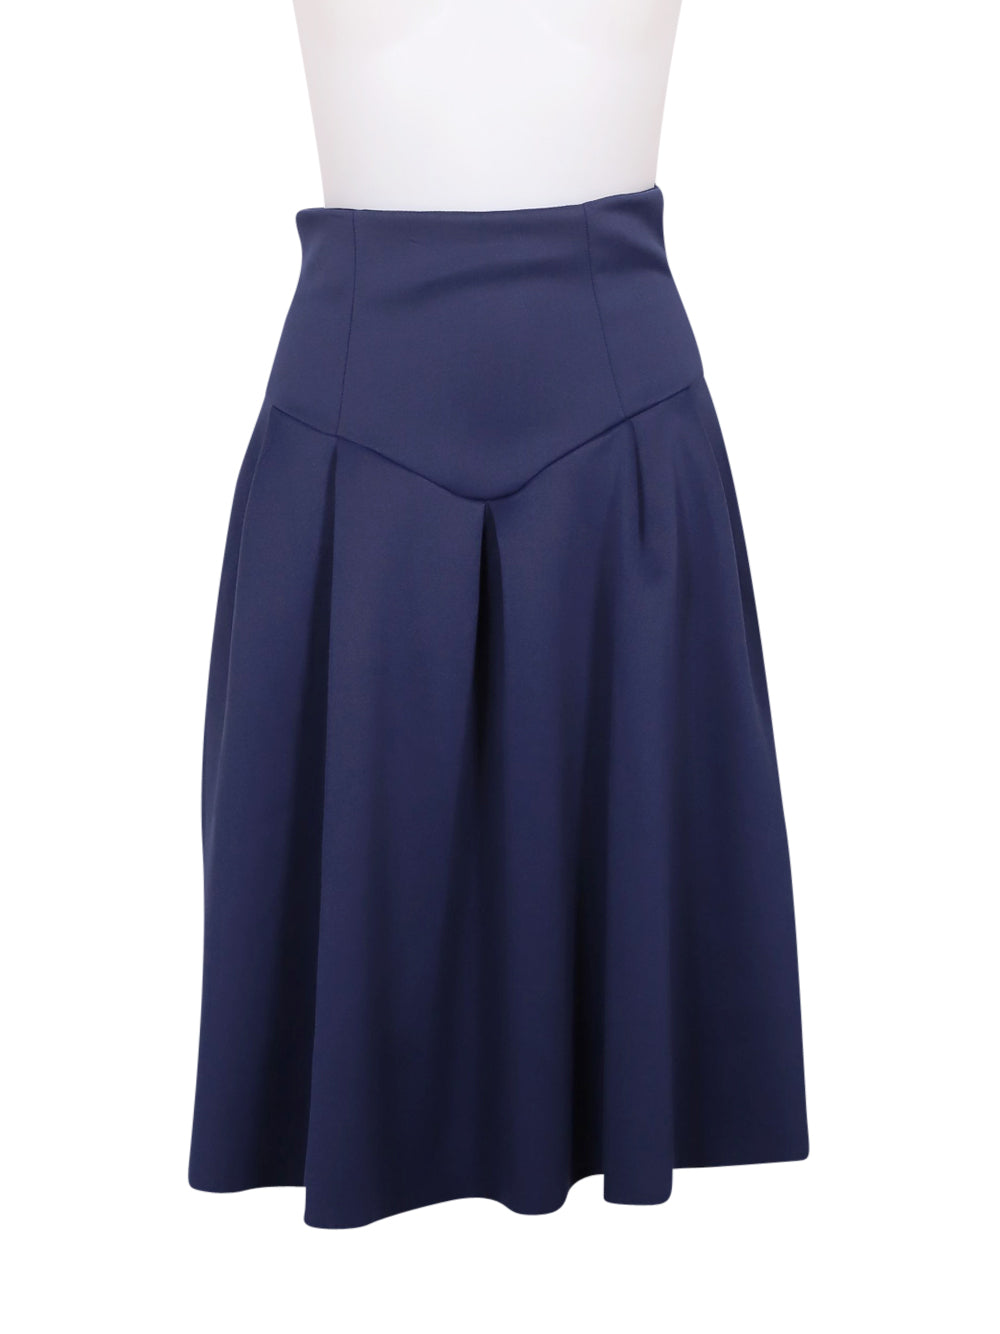 Front photo of Preloved Asos Blue Woman's skirt - size 4/XXS